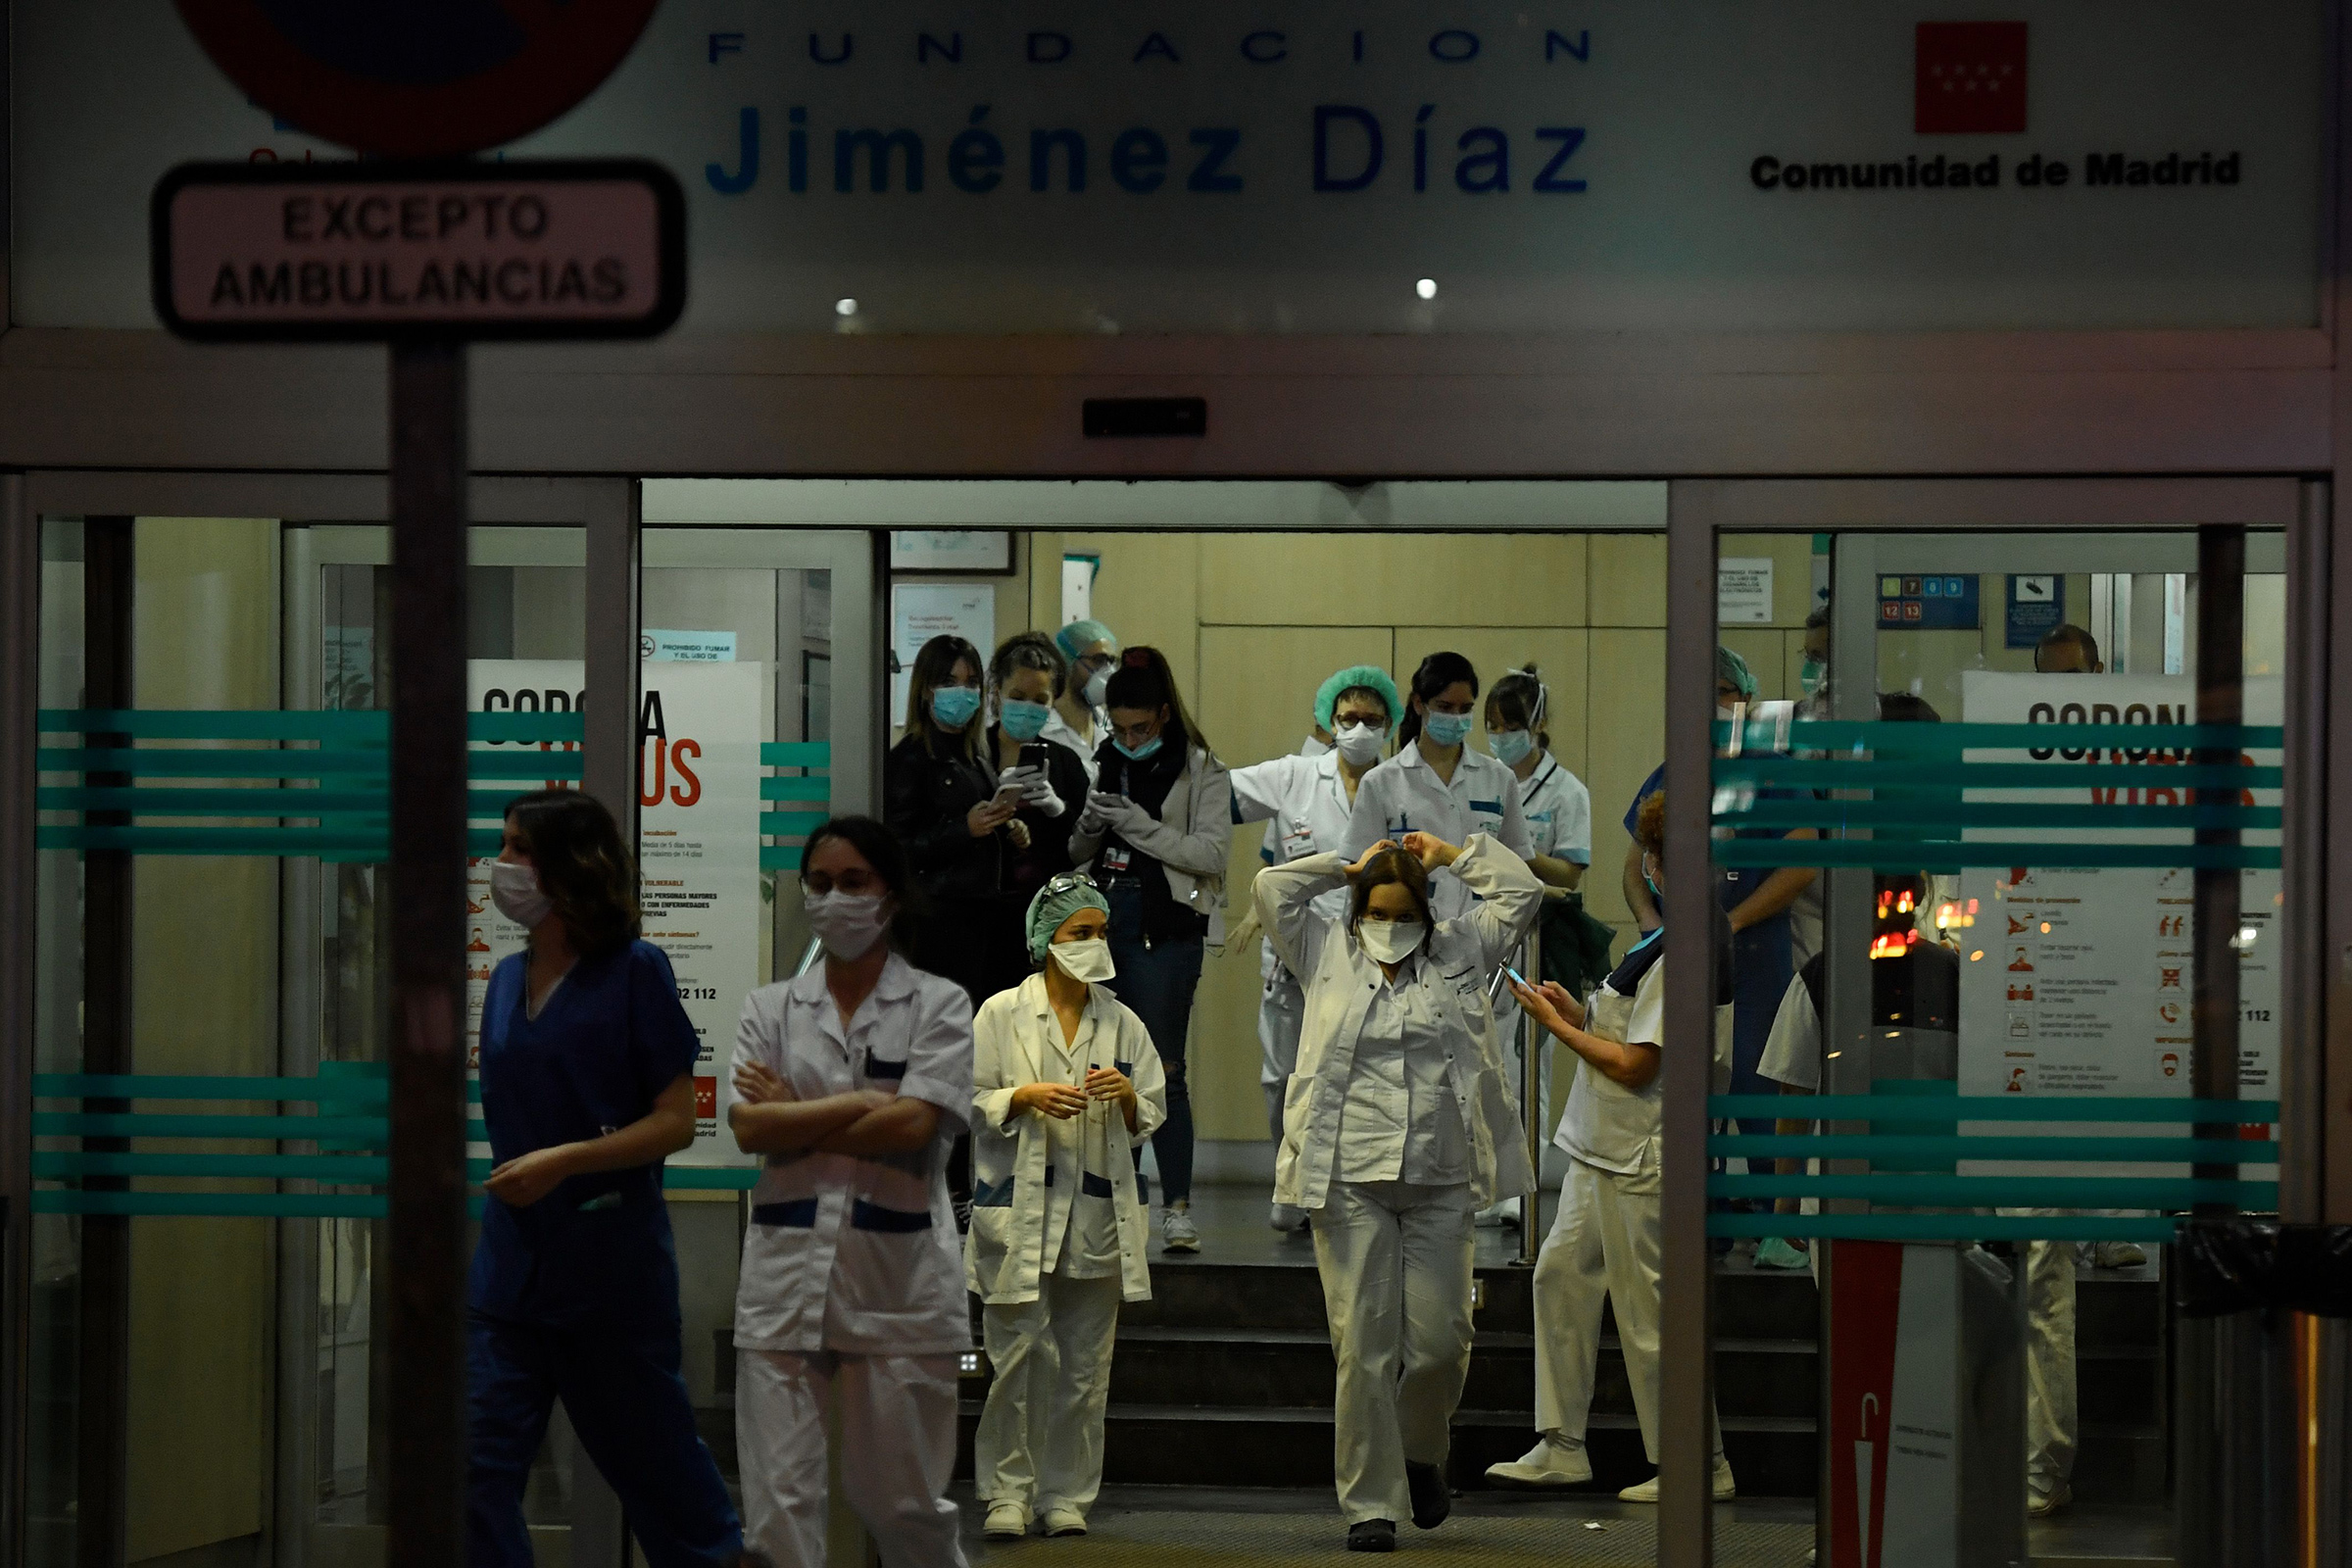 Healthcare workers dealing with the new coronavirus crisis stand at the entrance of the Fundacion Jimenez Diaz hospital in Madrid on March 25